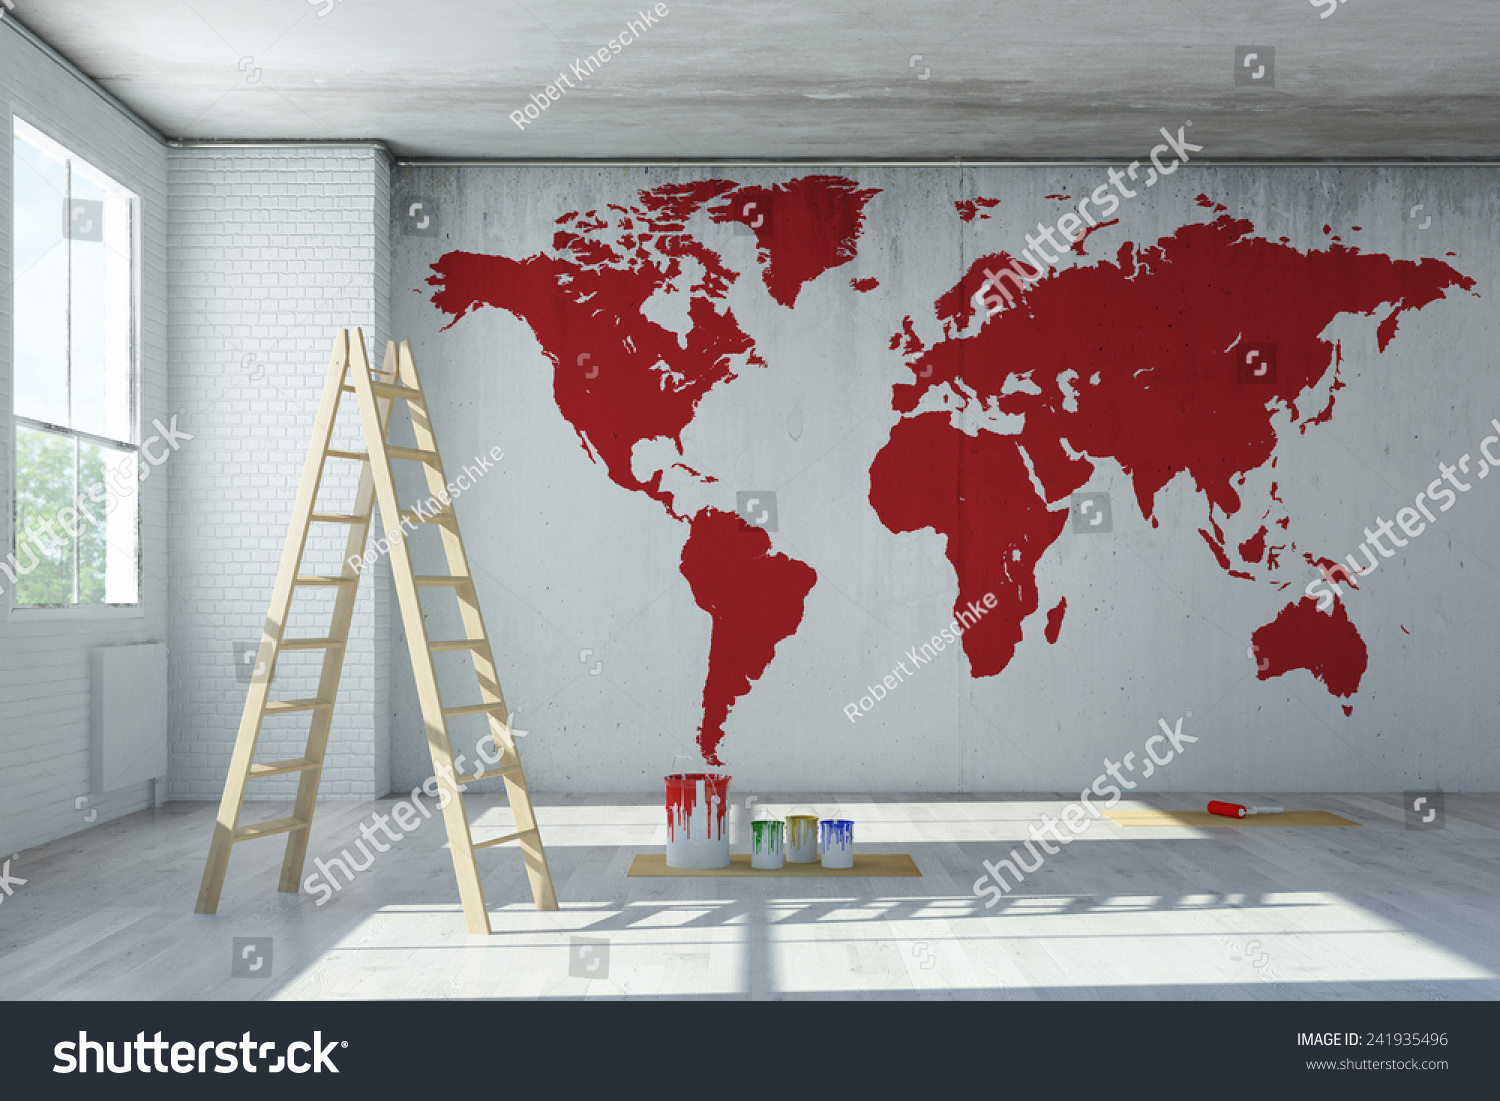 Big red world map painted on stock illustration 241935496 shutterstock big red world map painted on a wall in a room 3d rendering gumiabroncs Gallery